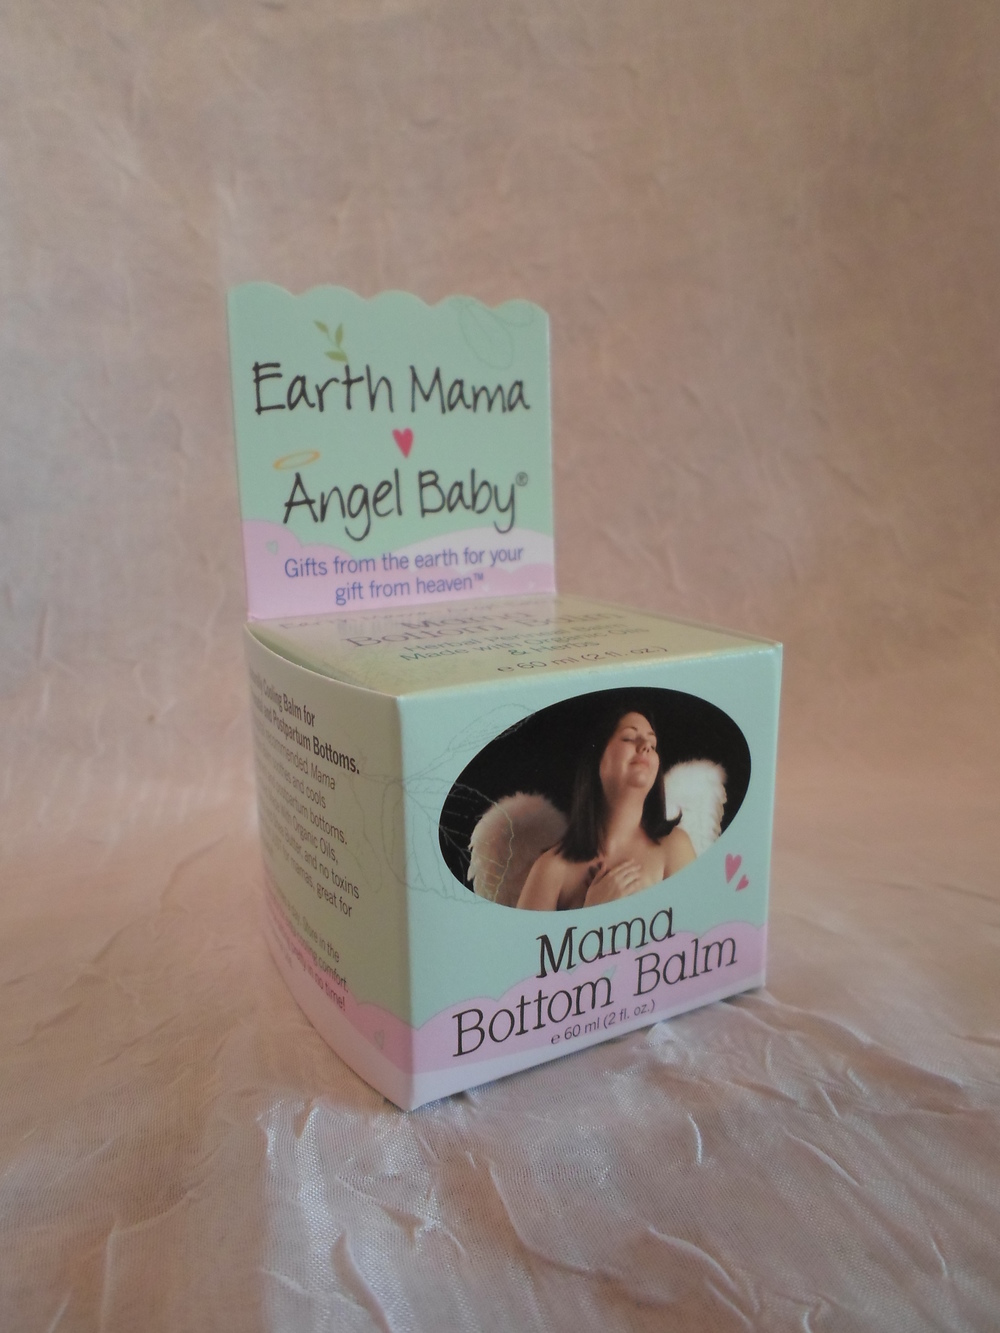 Earth Mama Angel Baby Mama Bottom Balm    $15.95    Wants 1  - PURCHASED